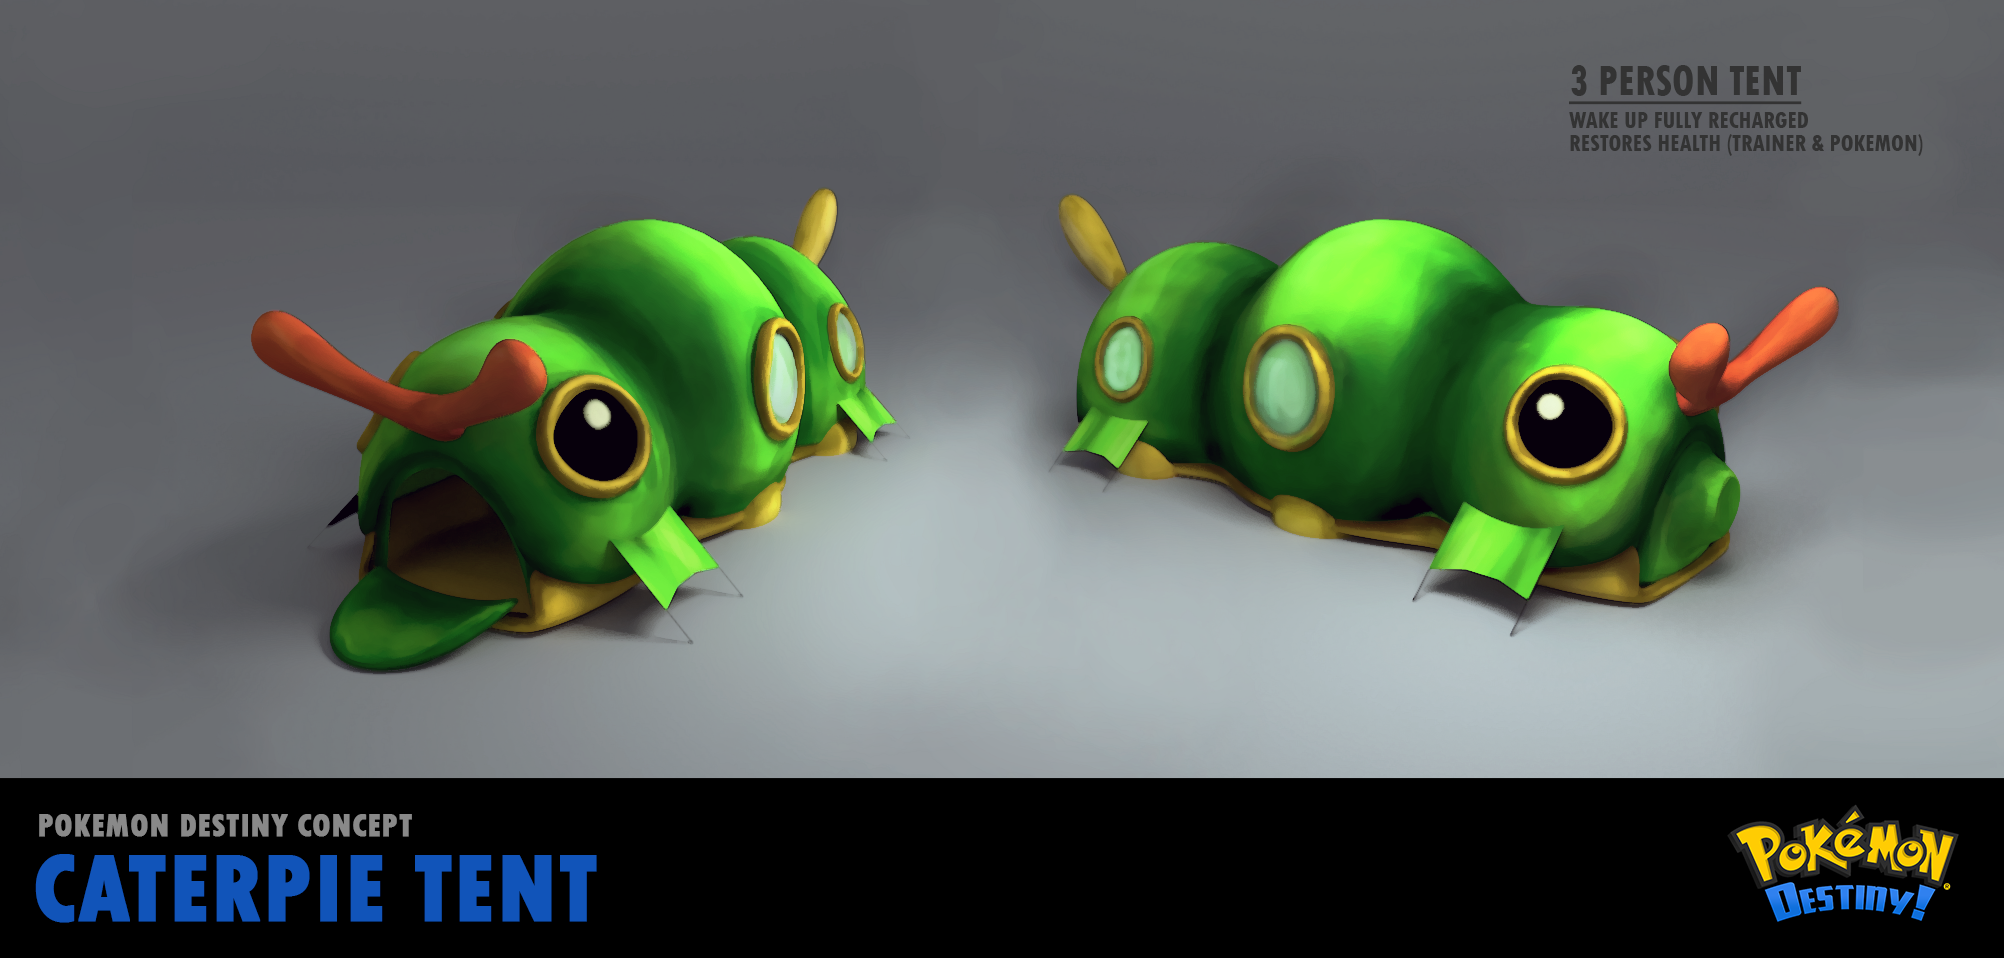 Add media Report RSS Caterpie Tent Concept (view original) & Caterpie Tent Concept image - Pokémon Destiny - Indie DB